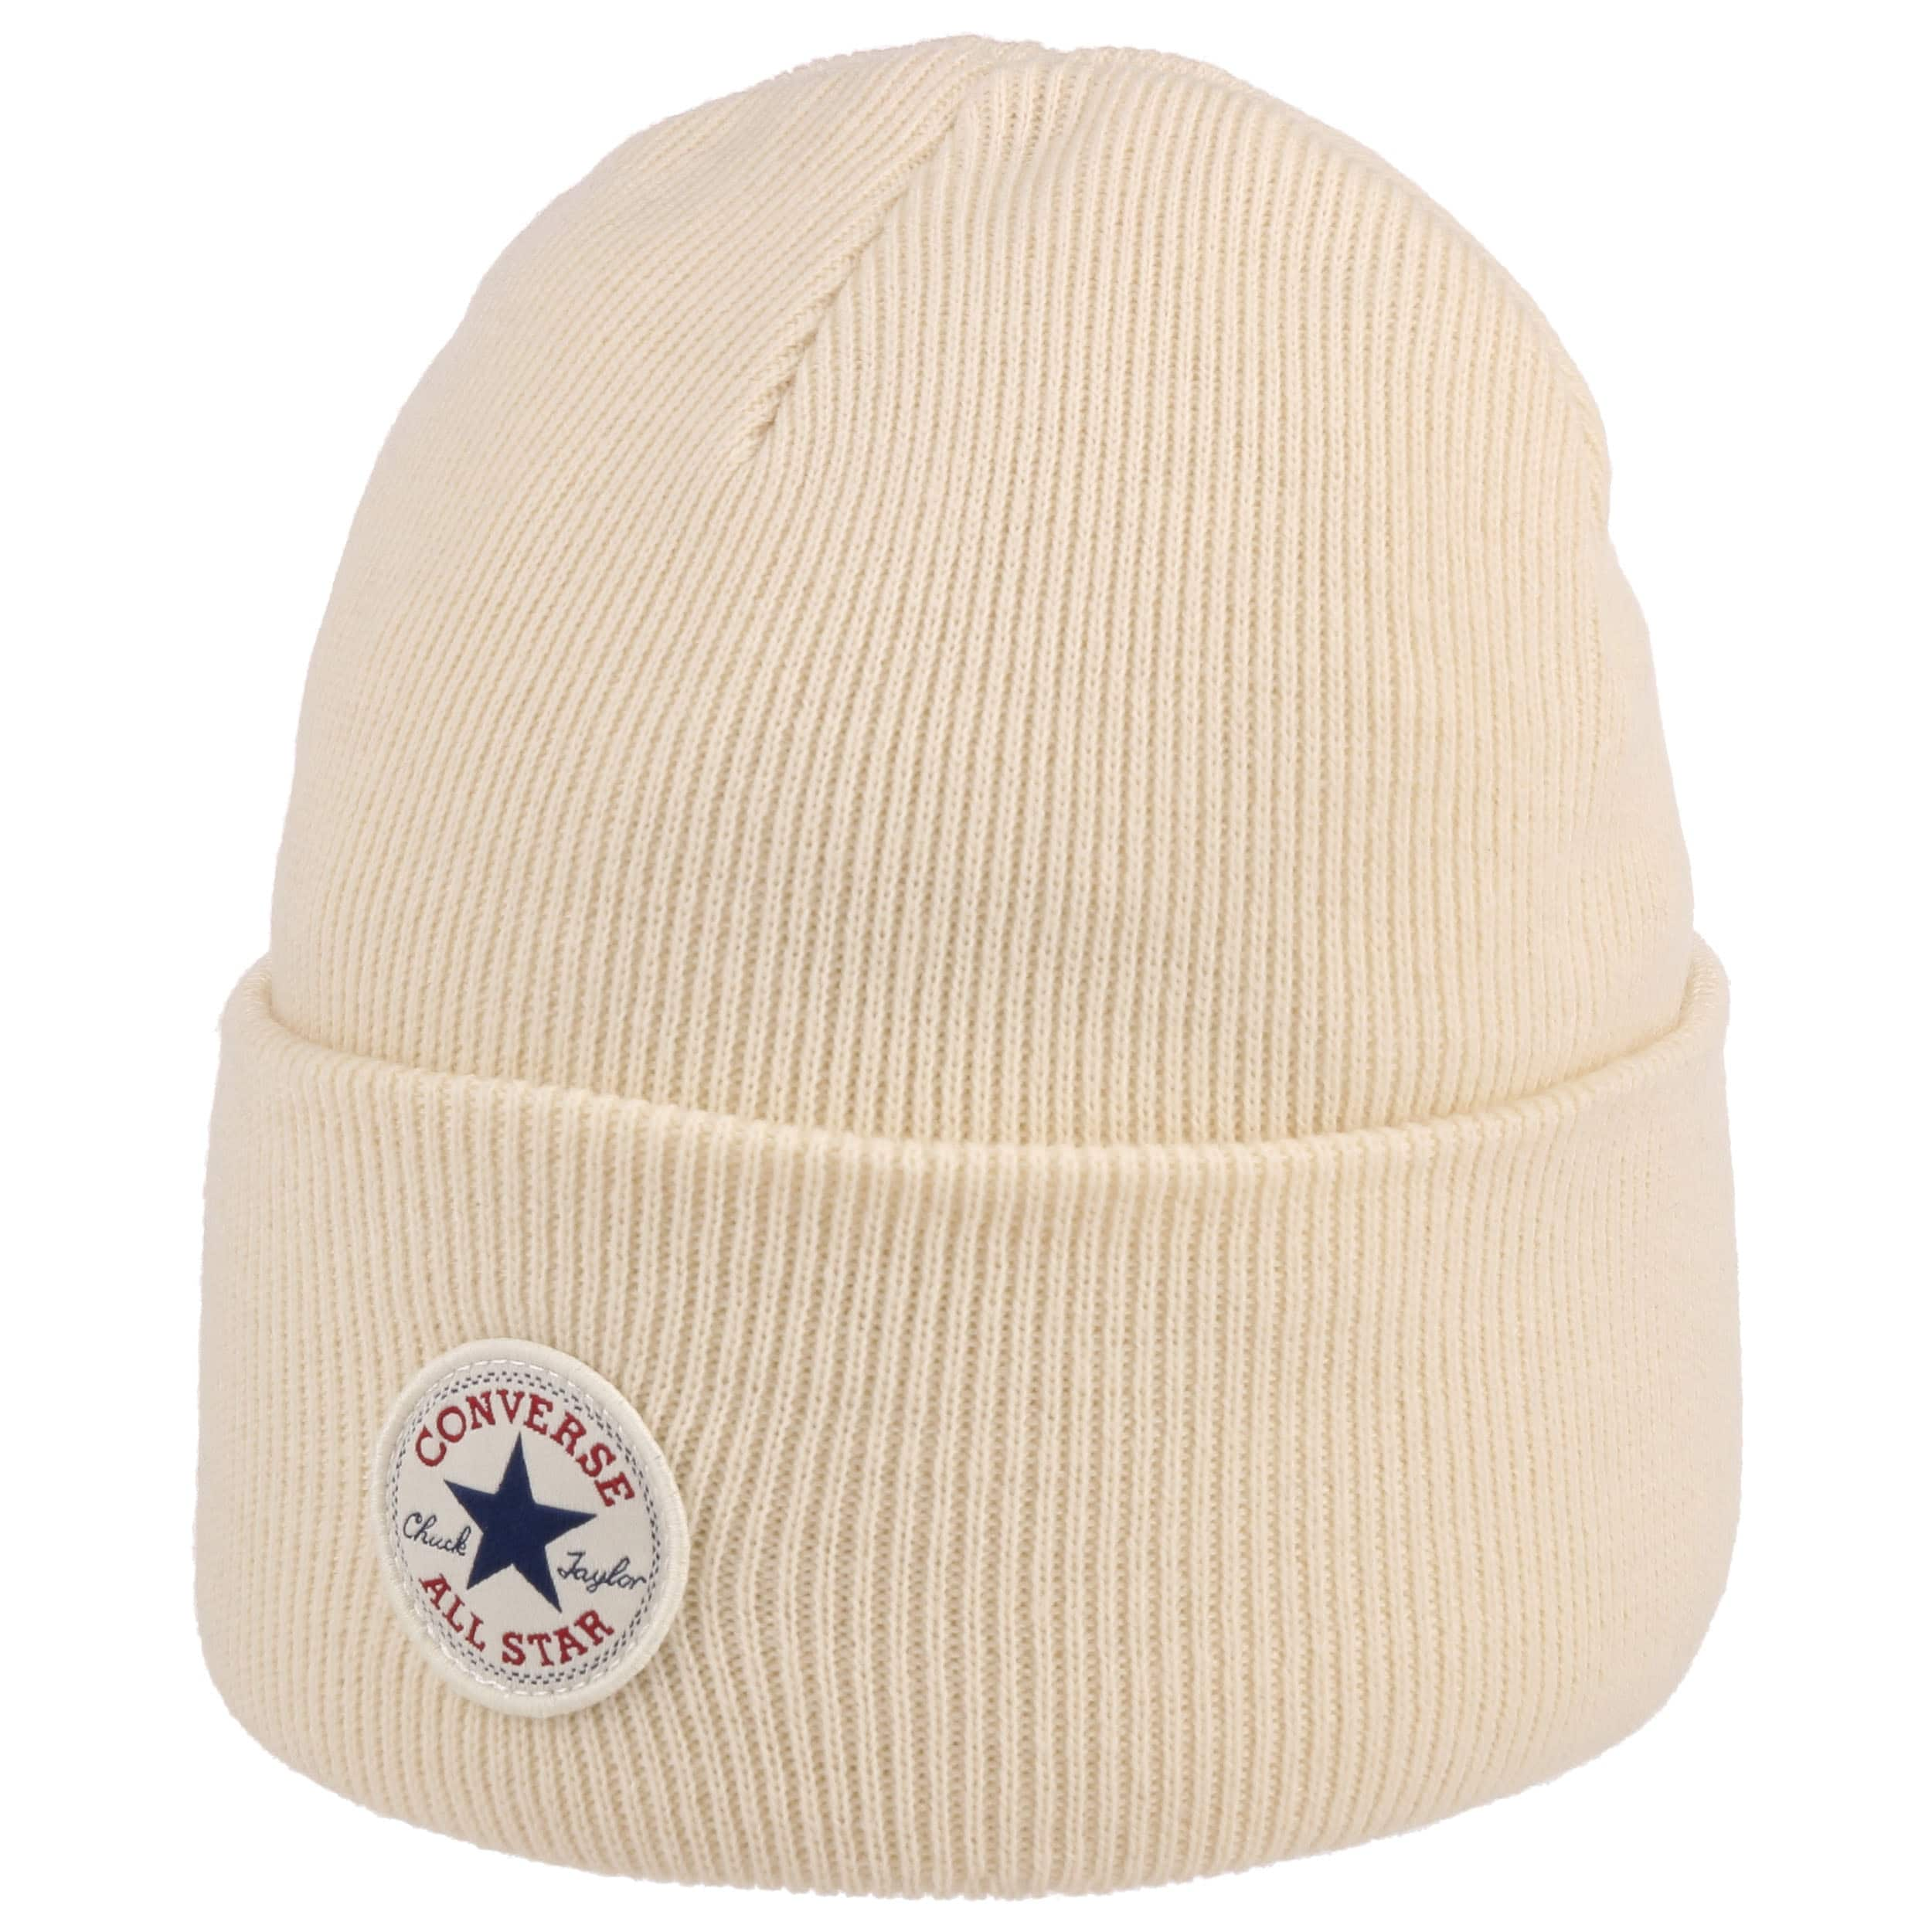 ... All Star Beanie with Cuff by Converse - cream white 3 ... 20c9bc9e0e7